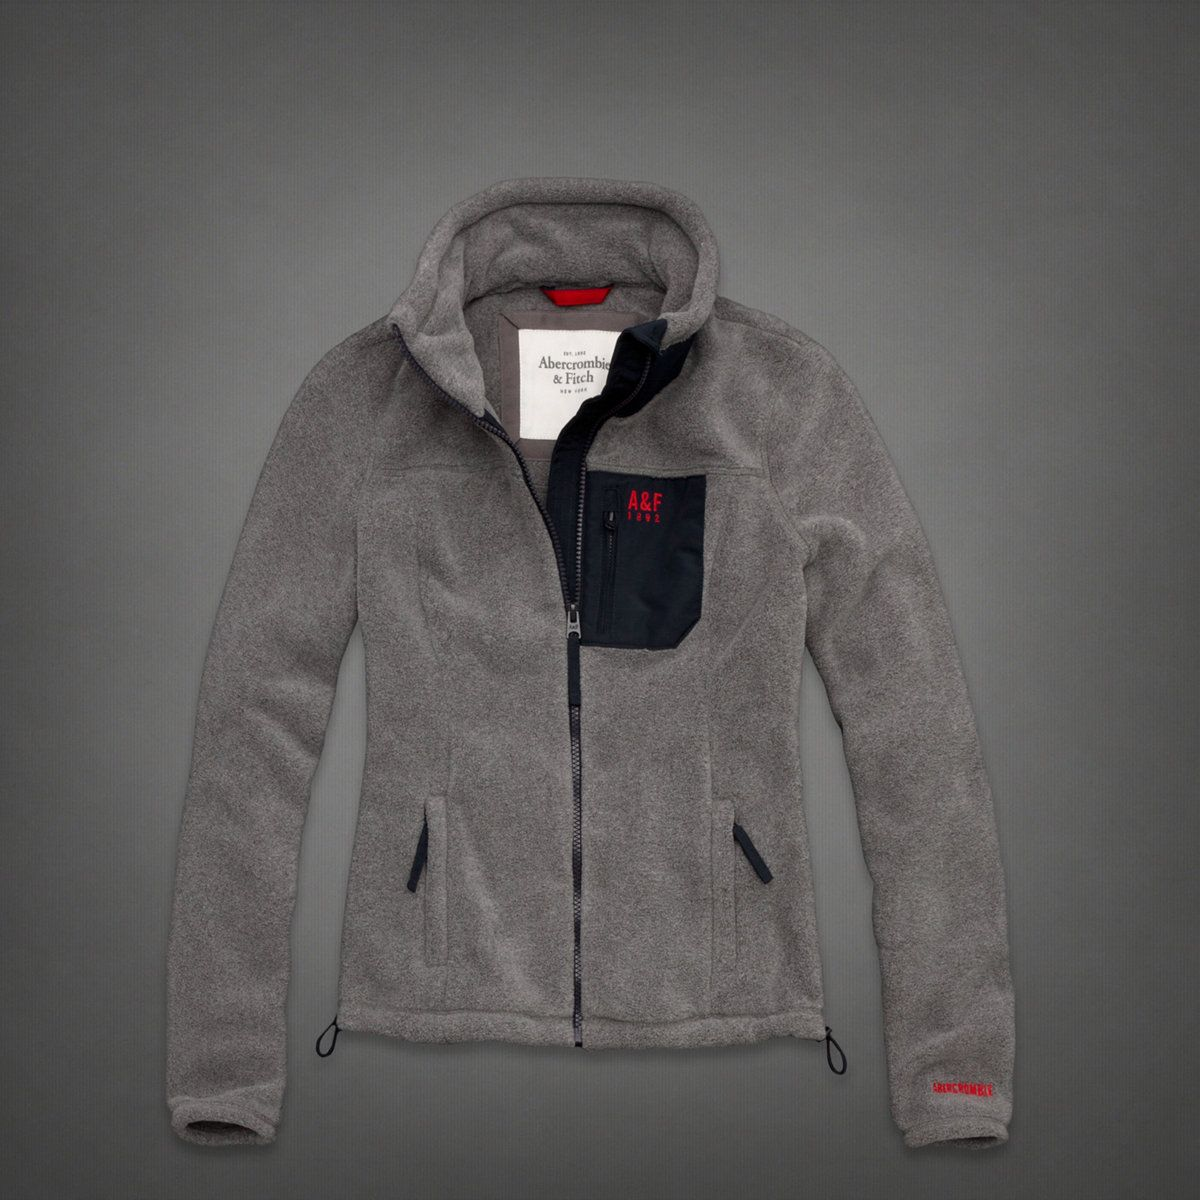 Bonded-Fleece Lightweight Jacket